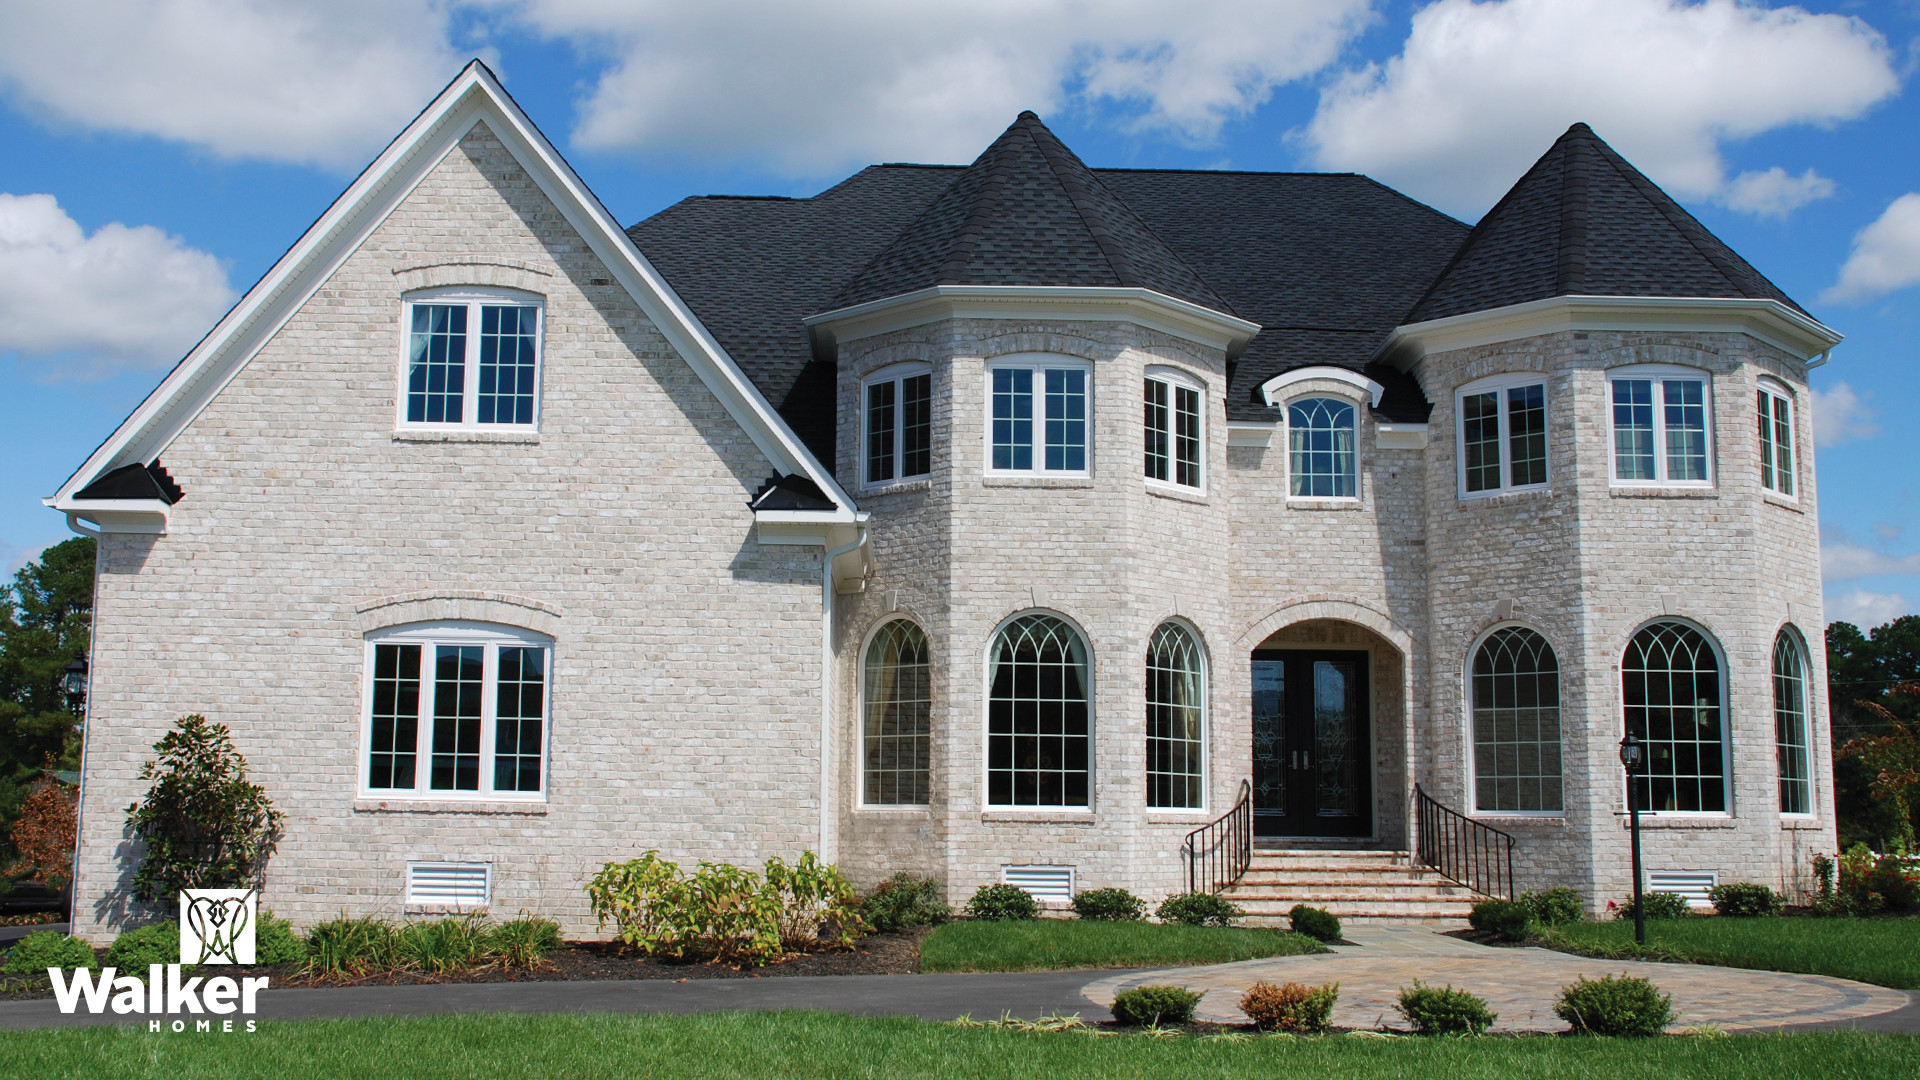 The Brayton is a custom home design by Walker Homes in Glen Allen, Virginia